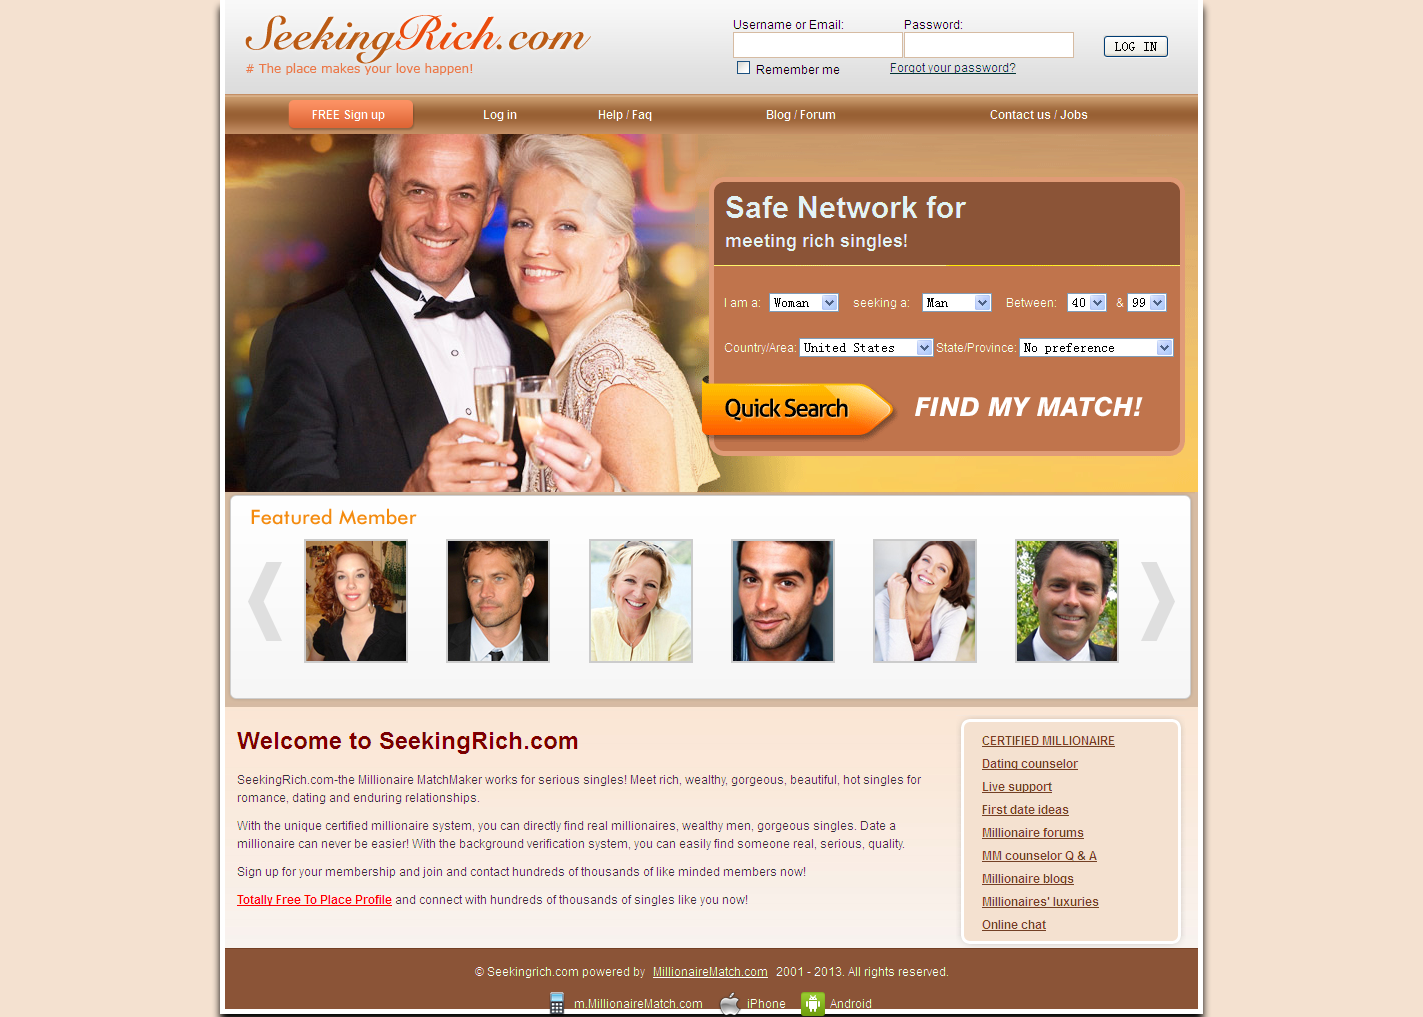 indiantown singles dating site Browse quality christian singles for free ondaysixcom is the leader in online christian dating connecting quality christians with integrity and style.